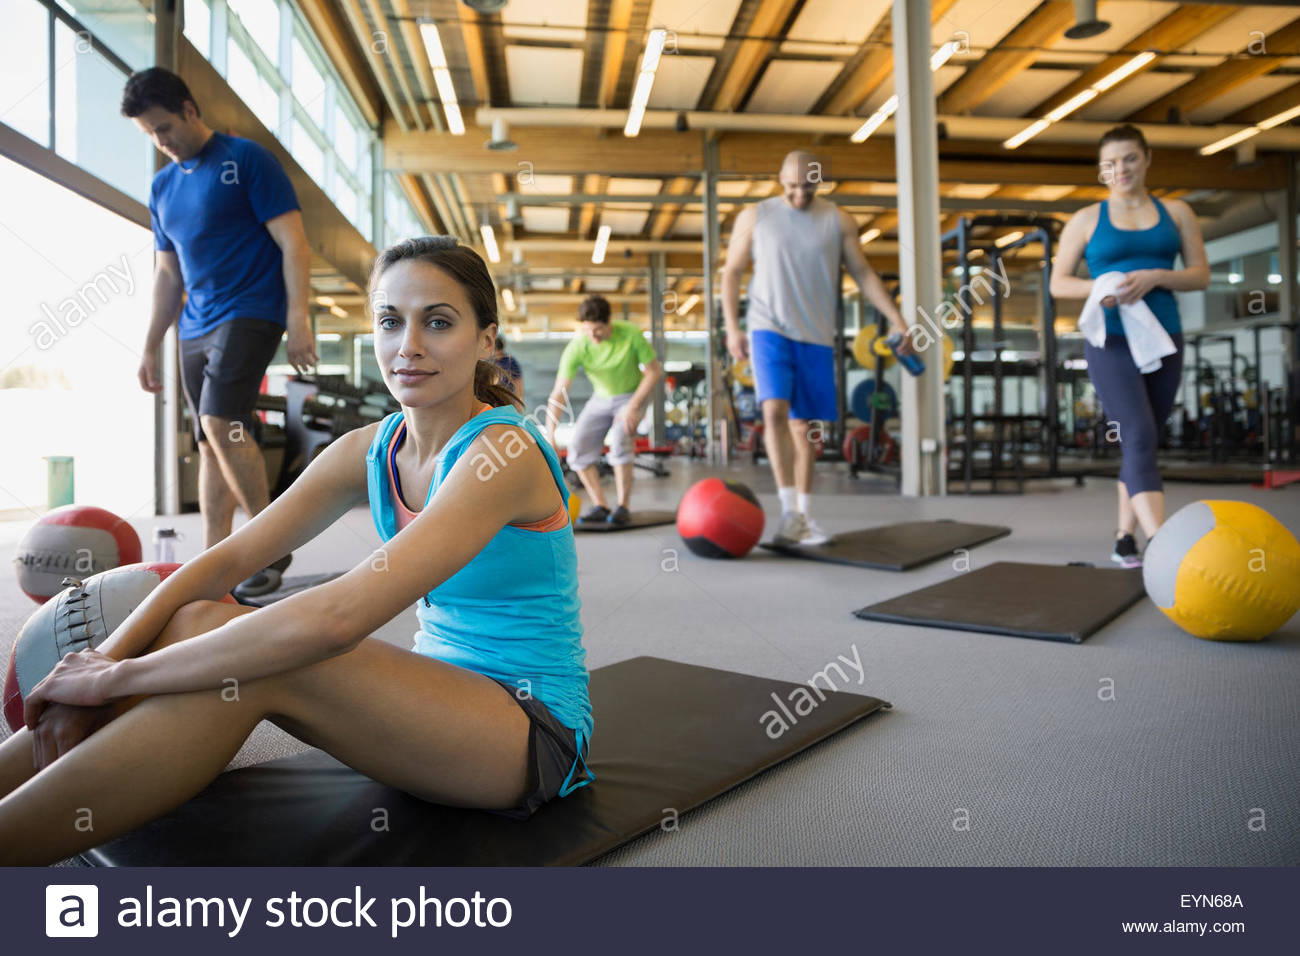 Portrait woman on mat ready for exercise class - Stock Image